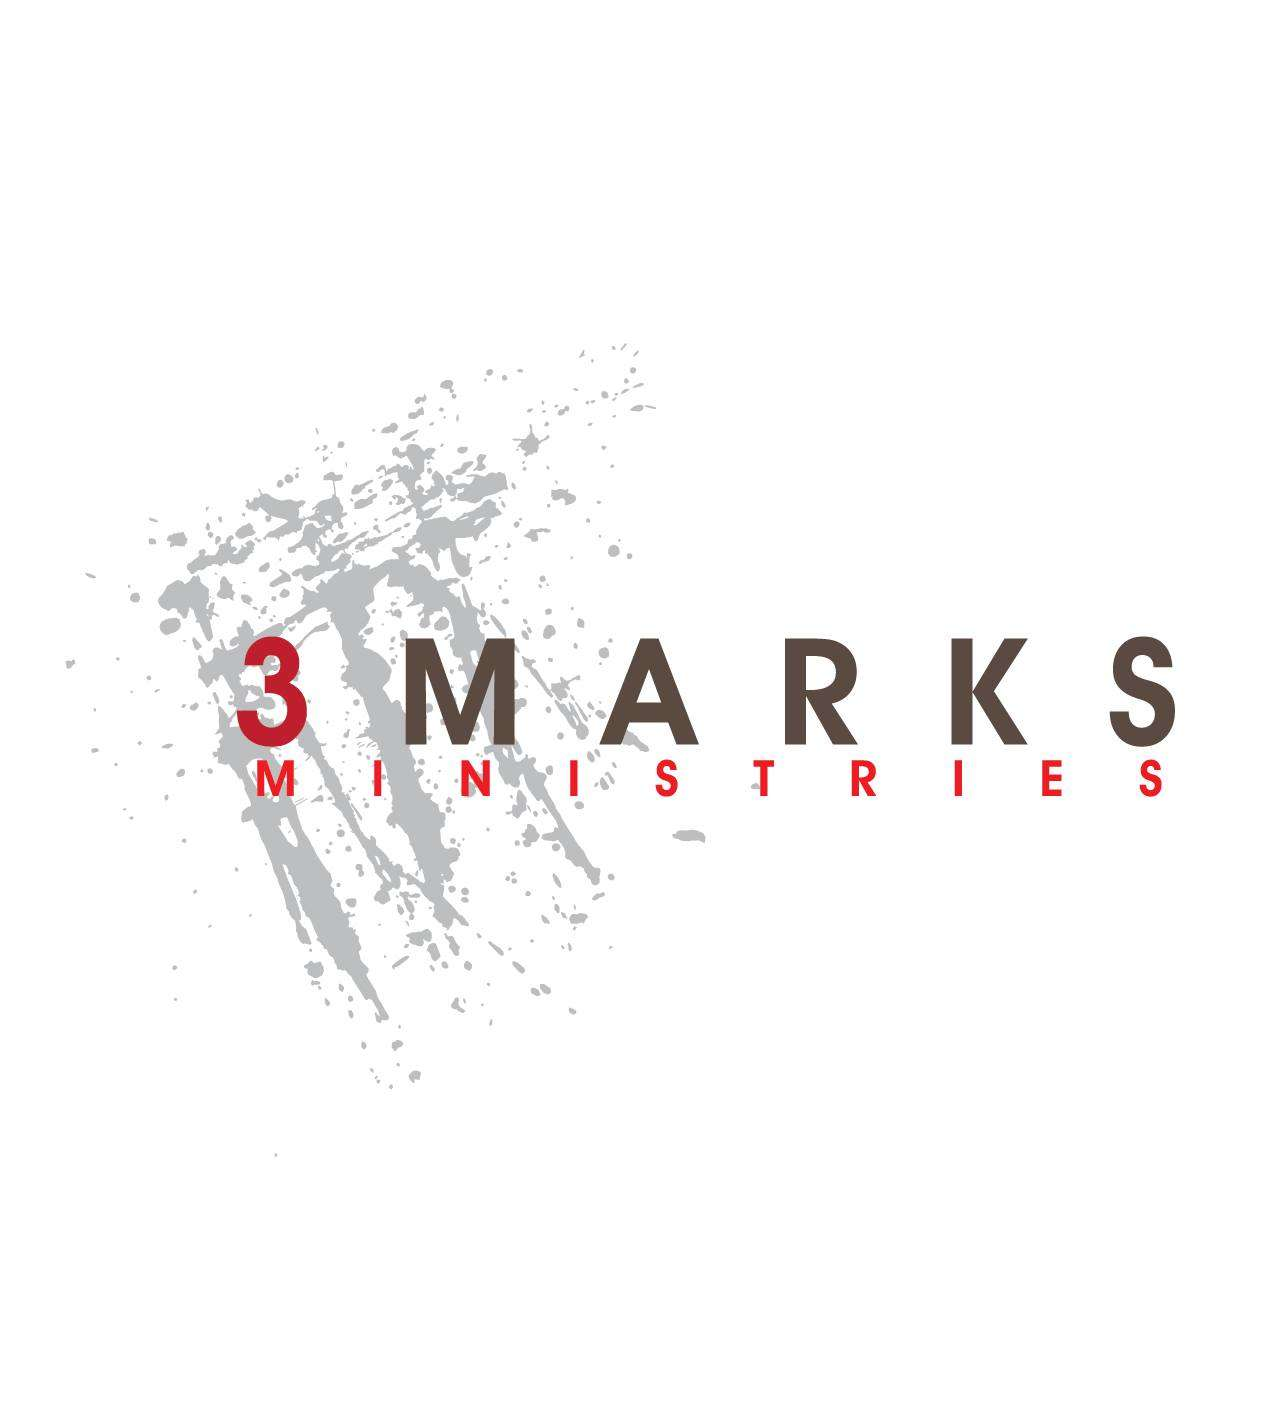 branding created for 3 marks ministries by marketography